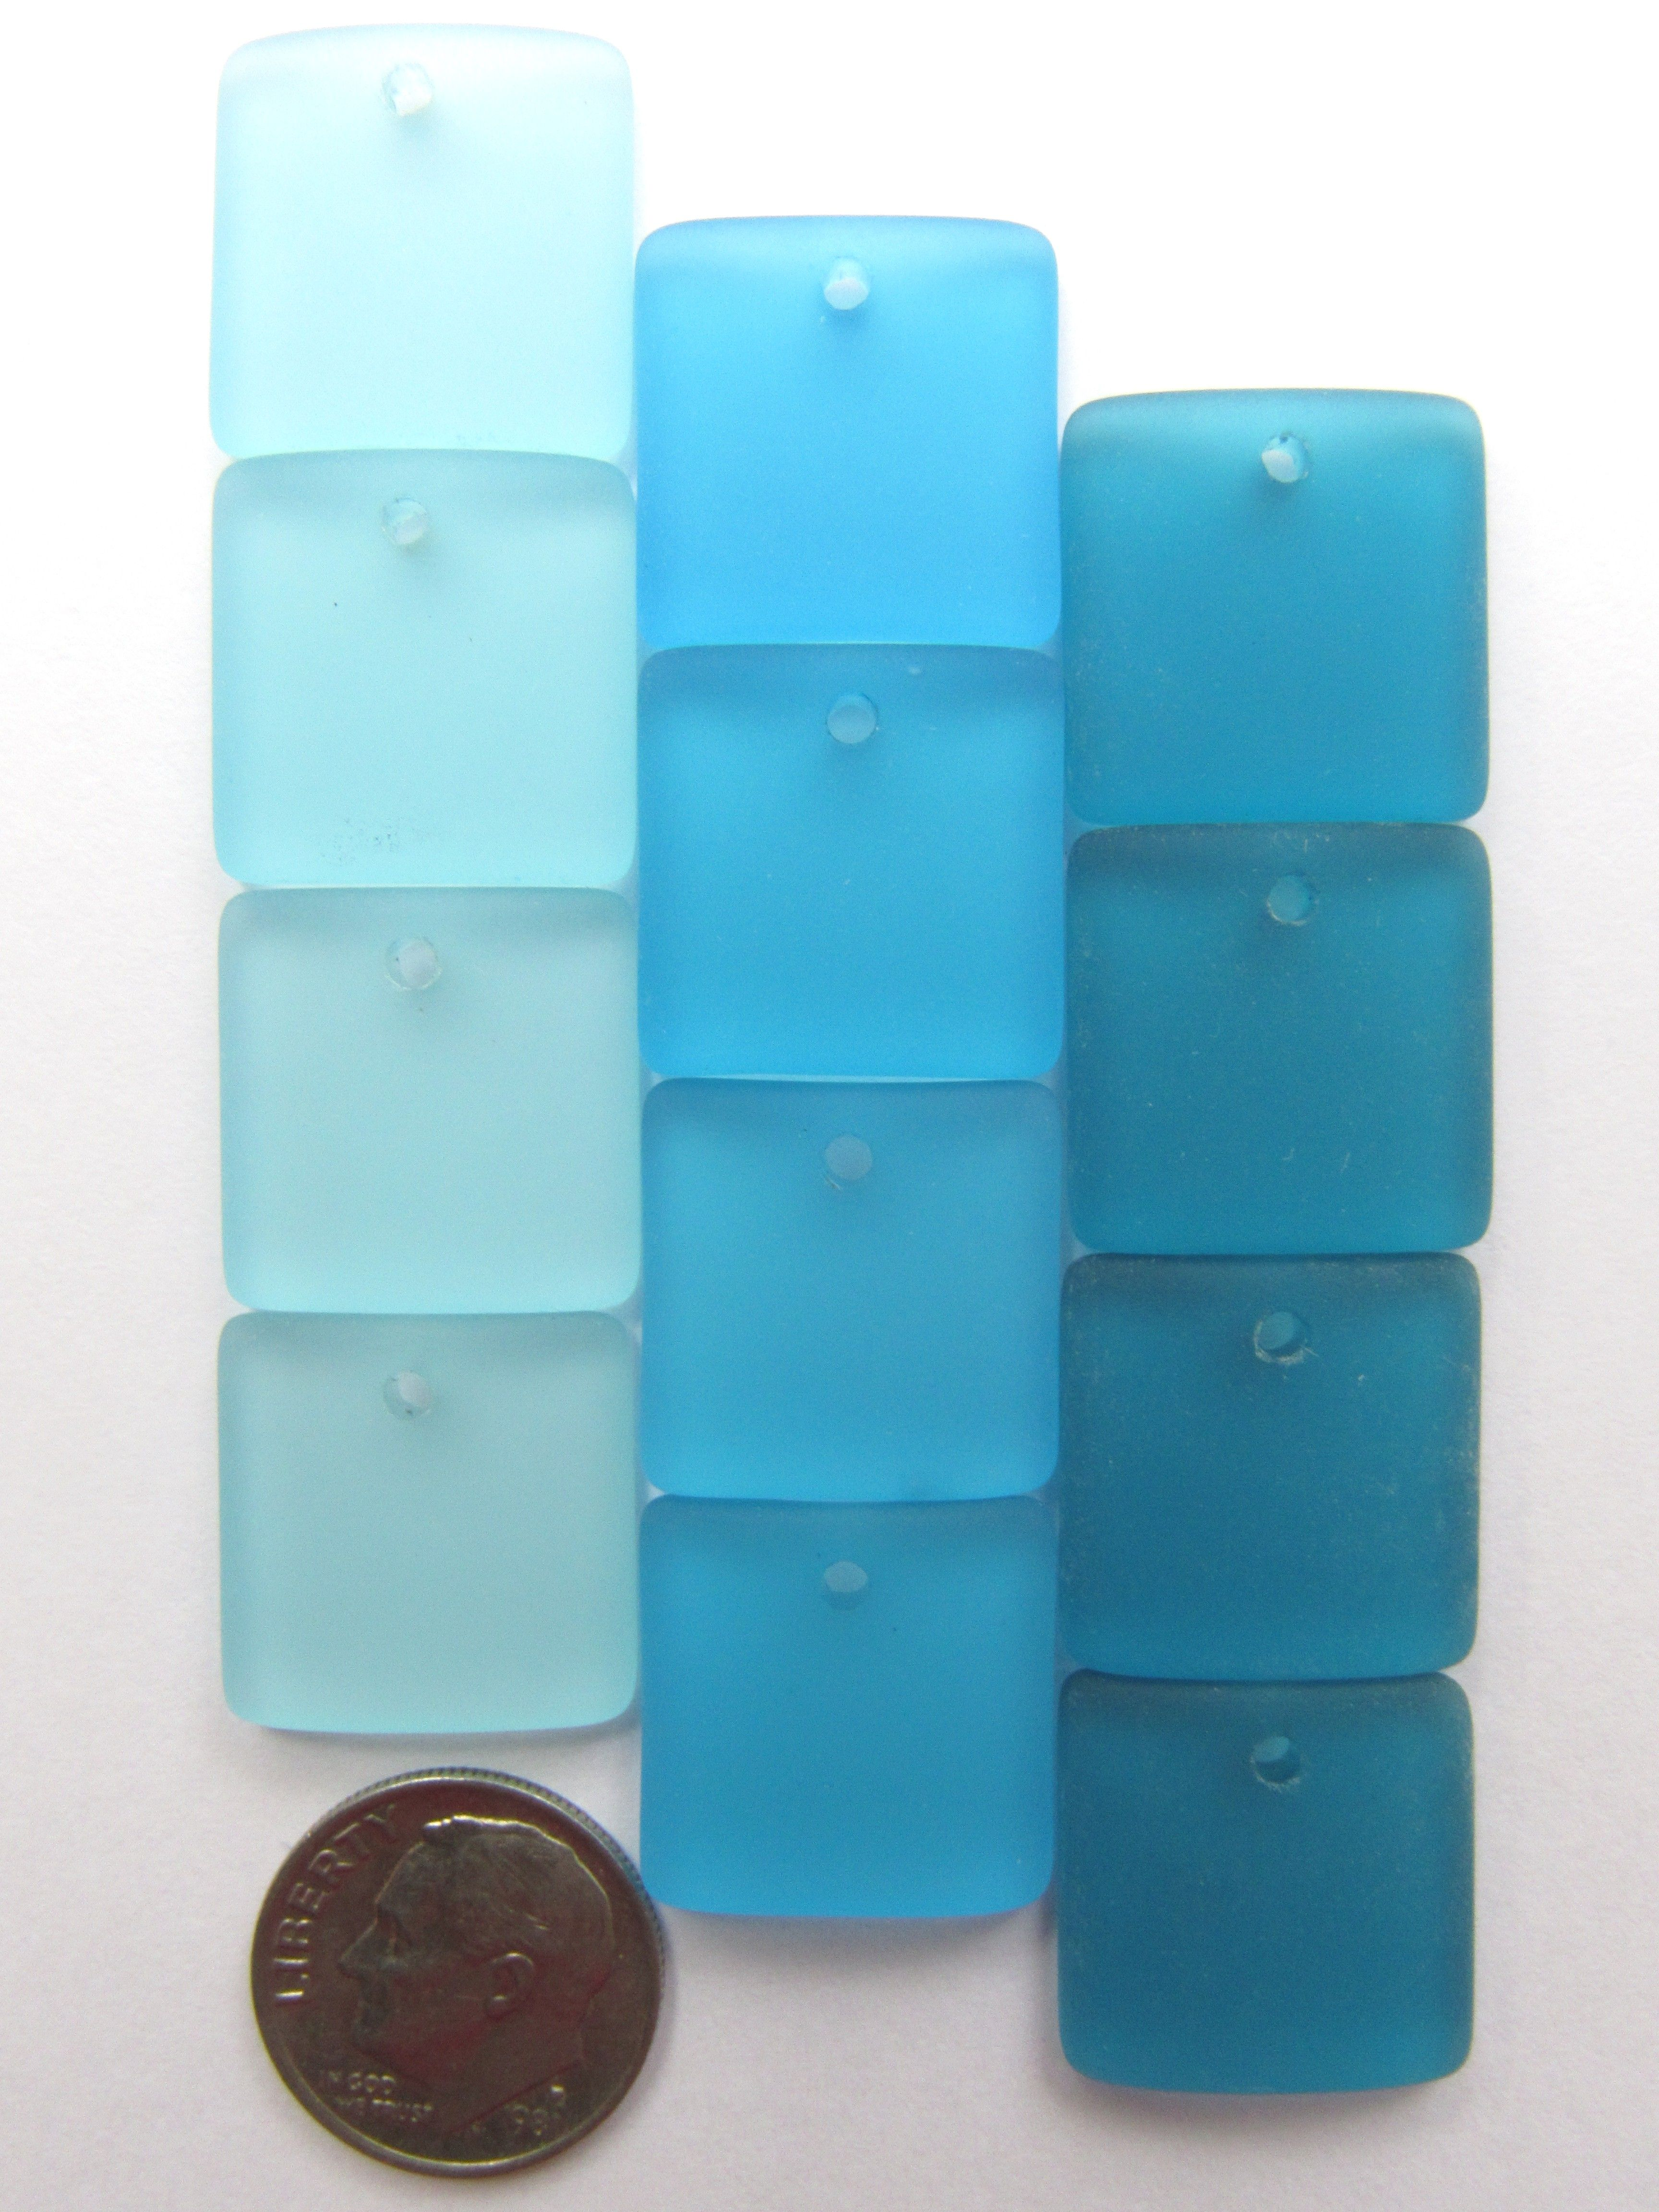 Each Square Bottle Curved Pendant Measures 19X16Mm And Is Top